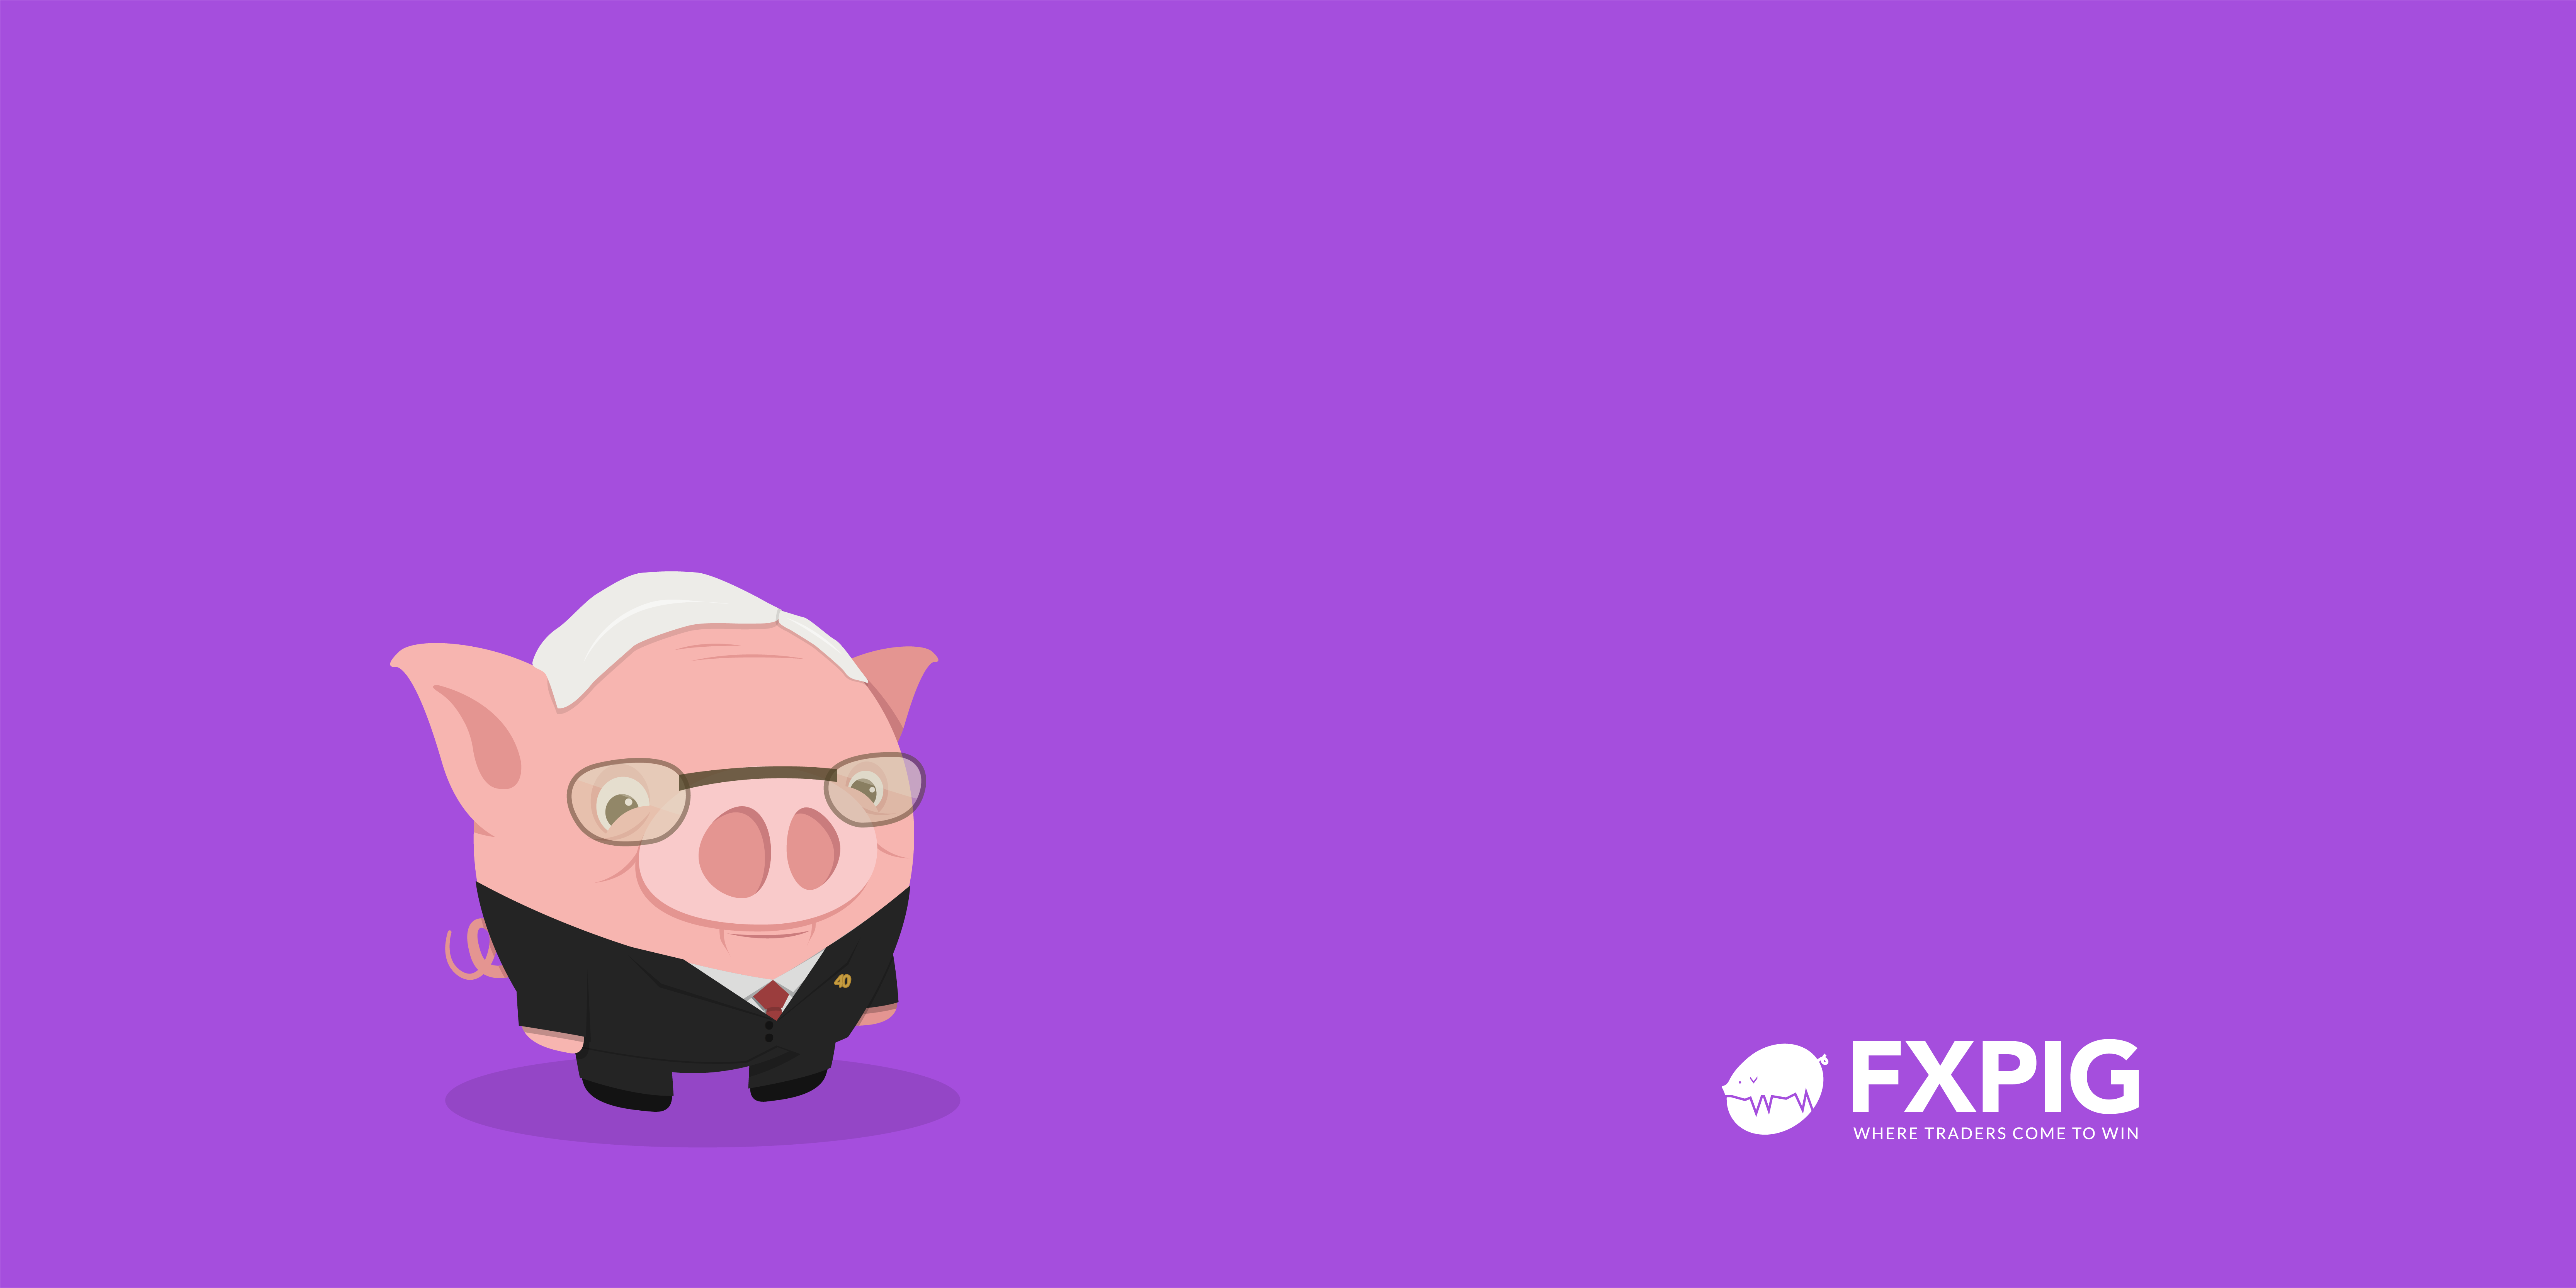 FOREX-trading-quote_warren-buffett-wisdom_FXPIG